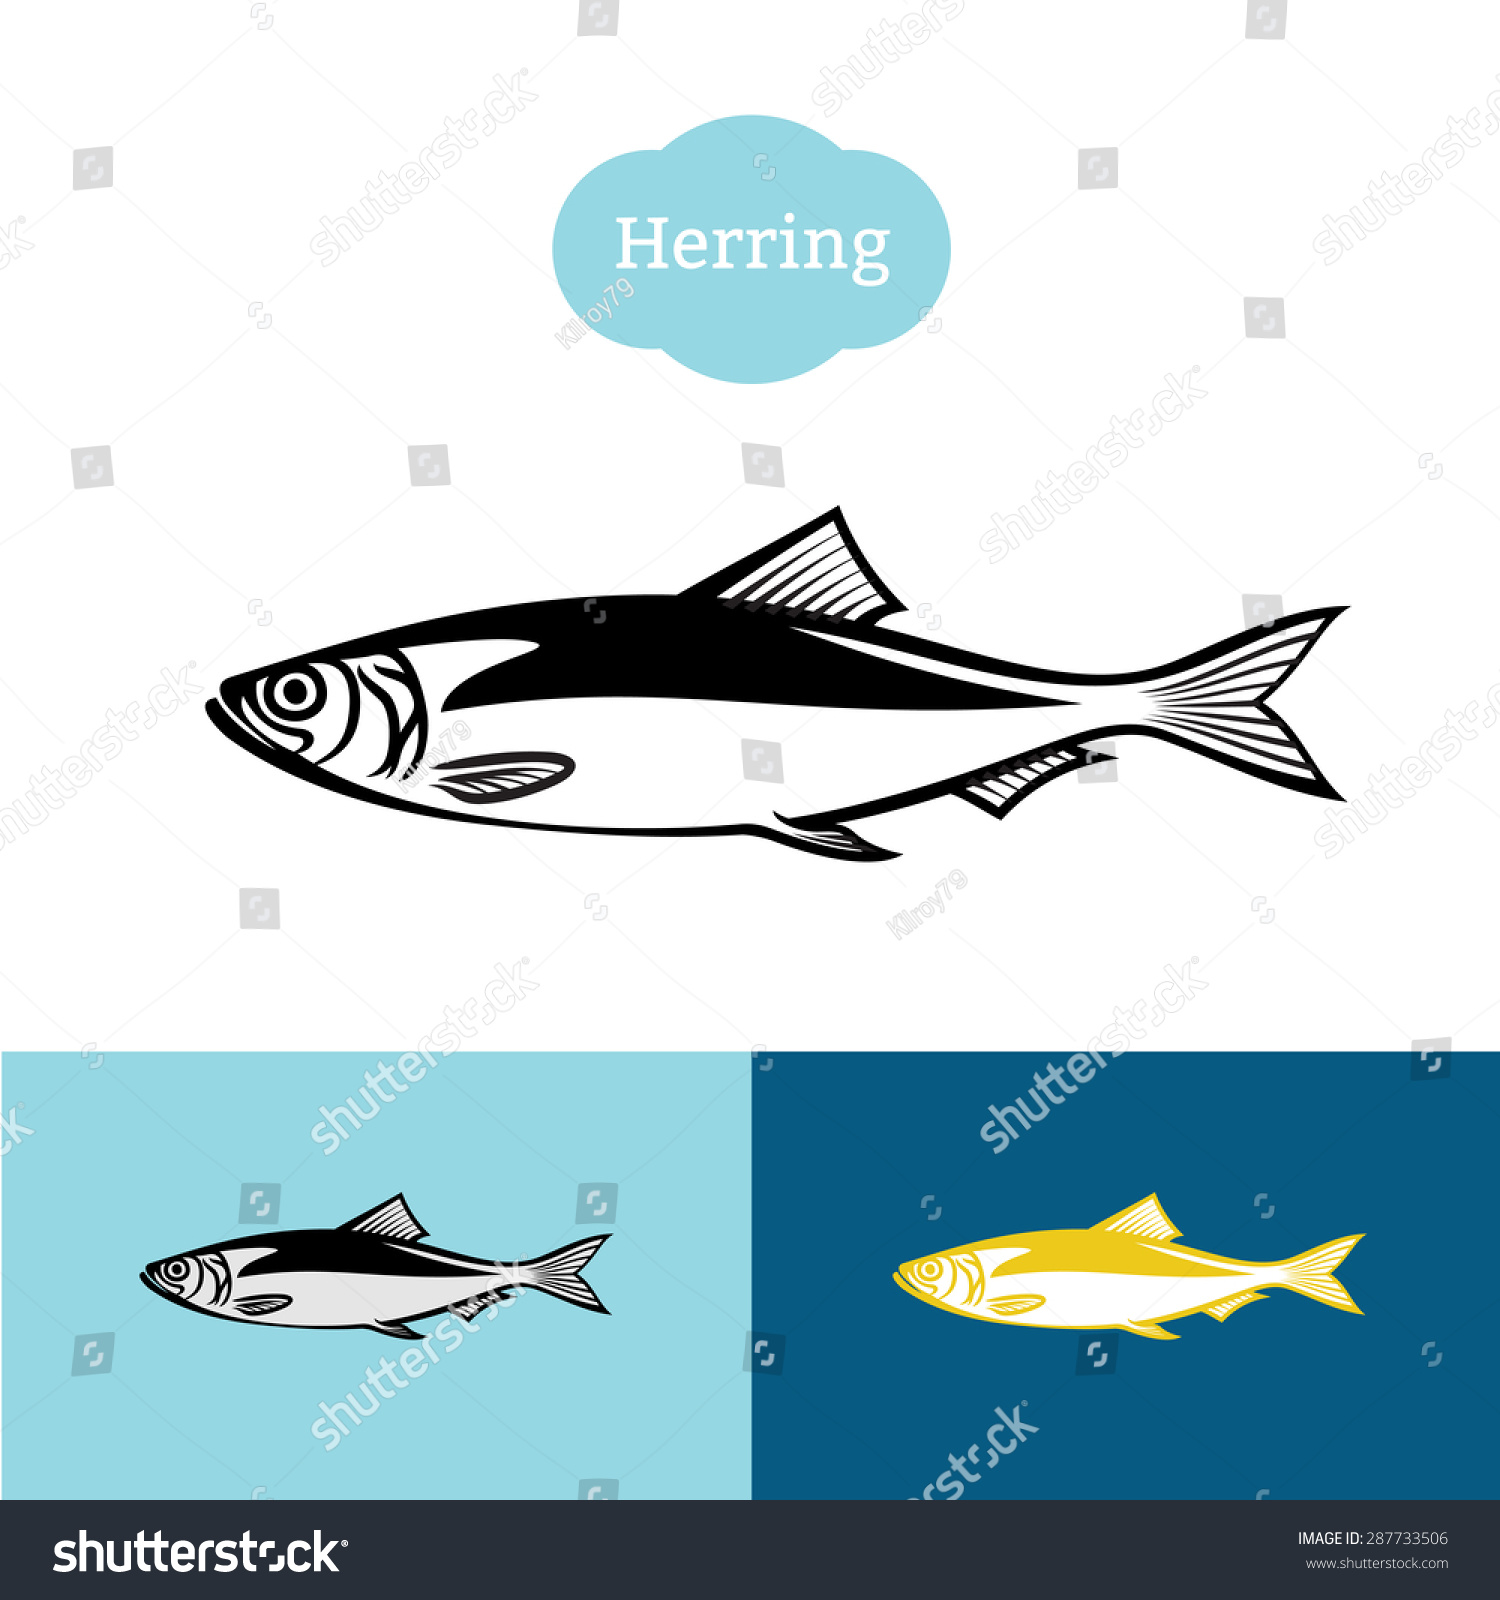 herring black one color silhouette fish symbol logo for food industry